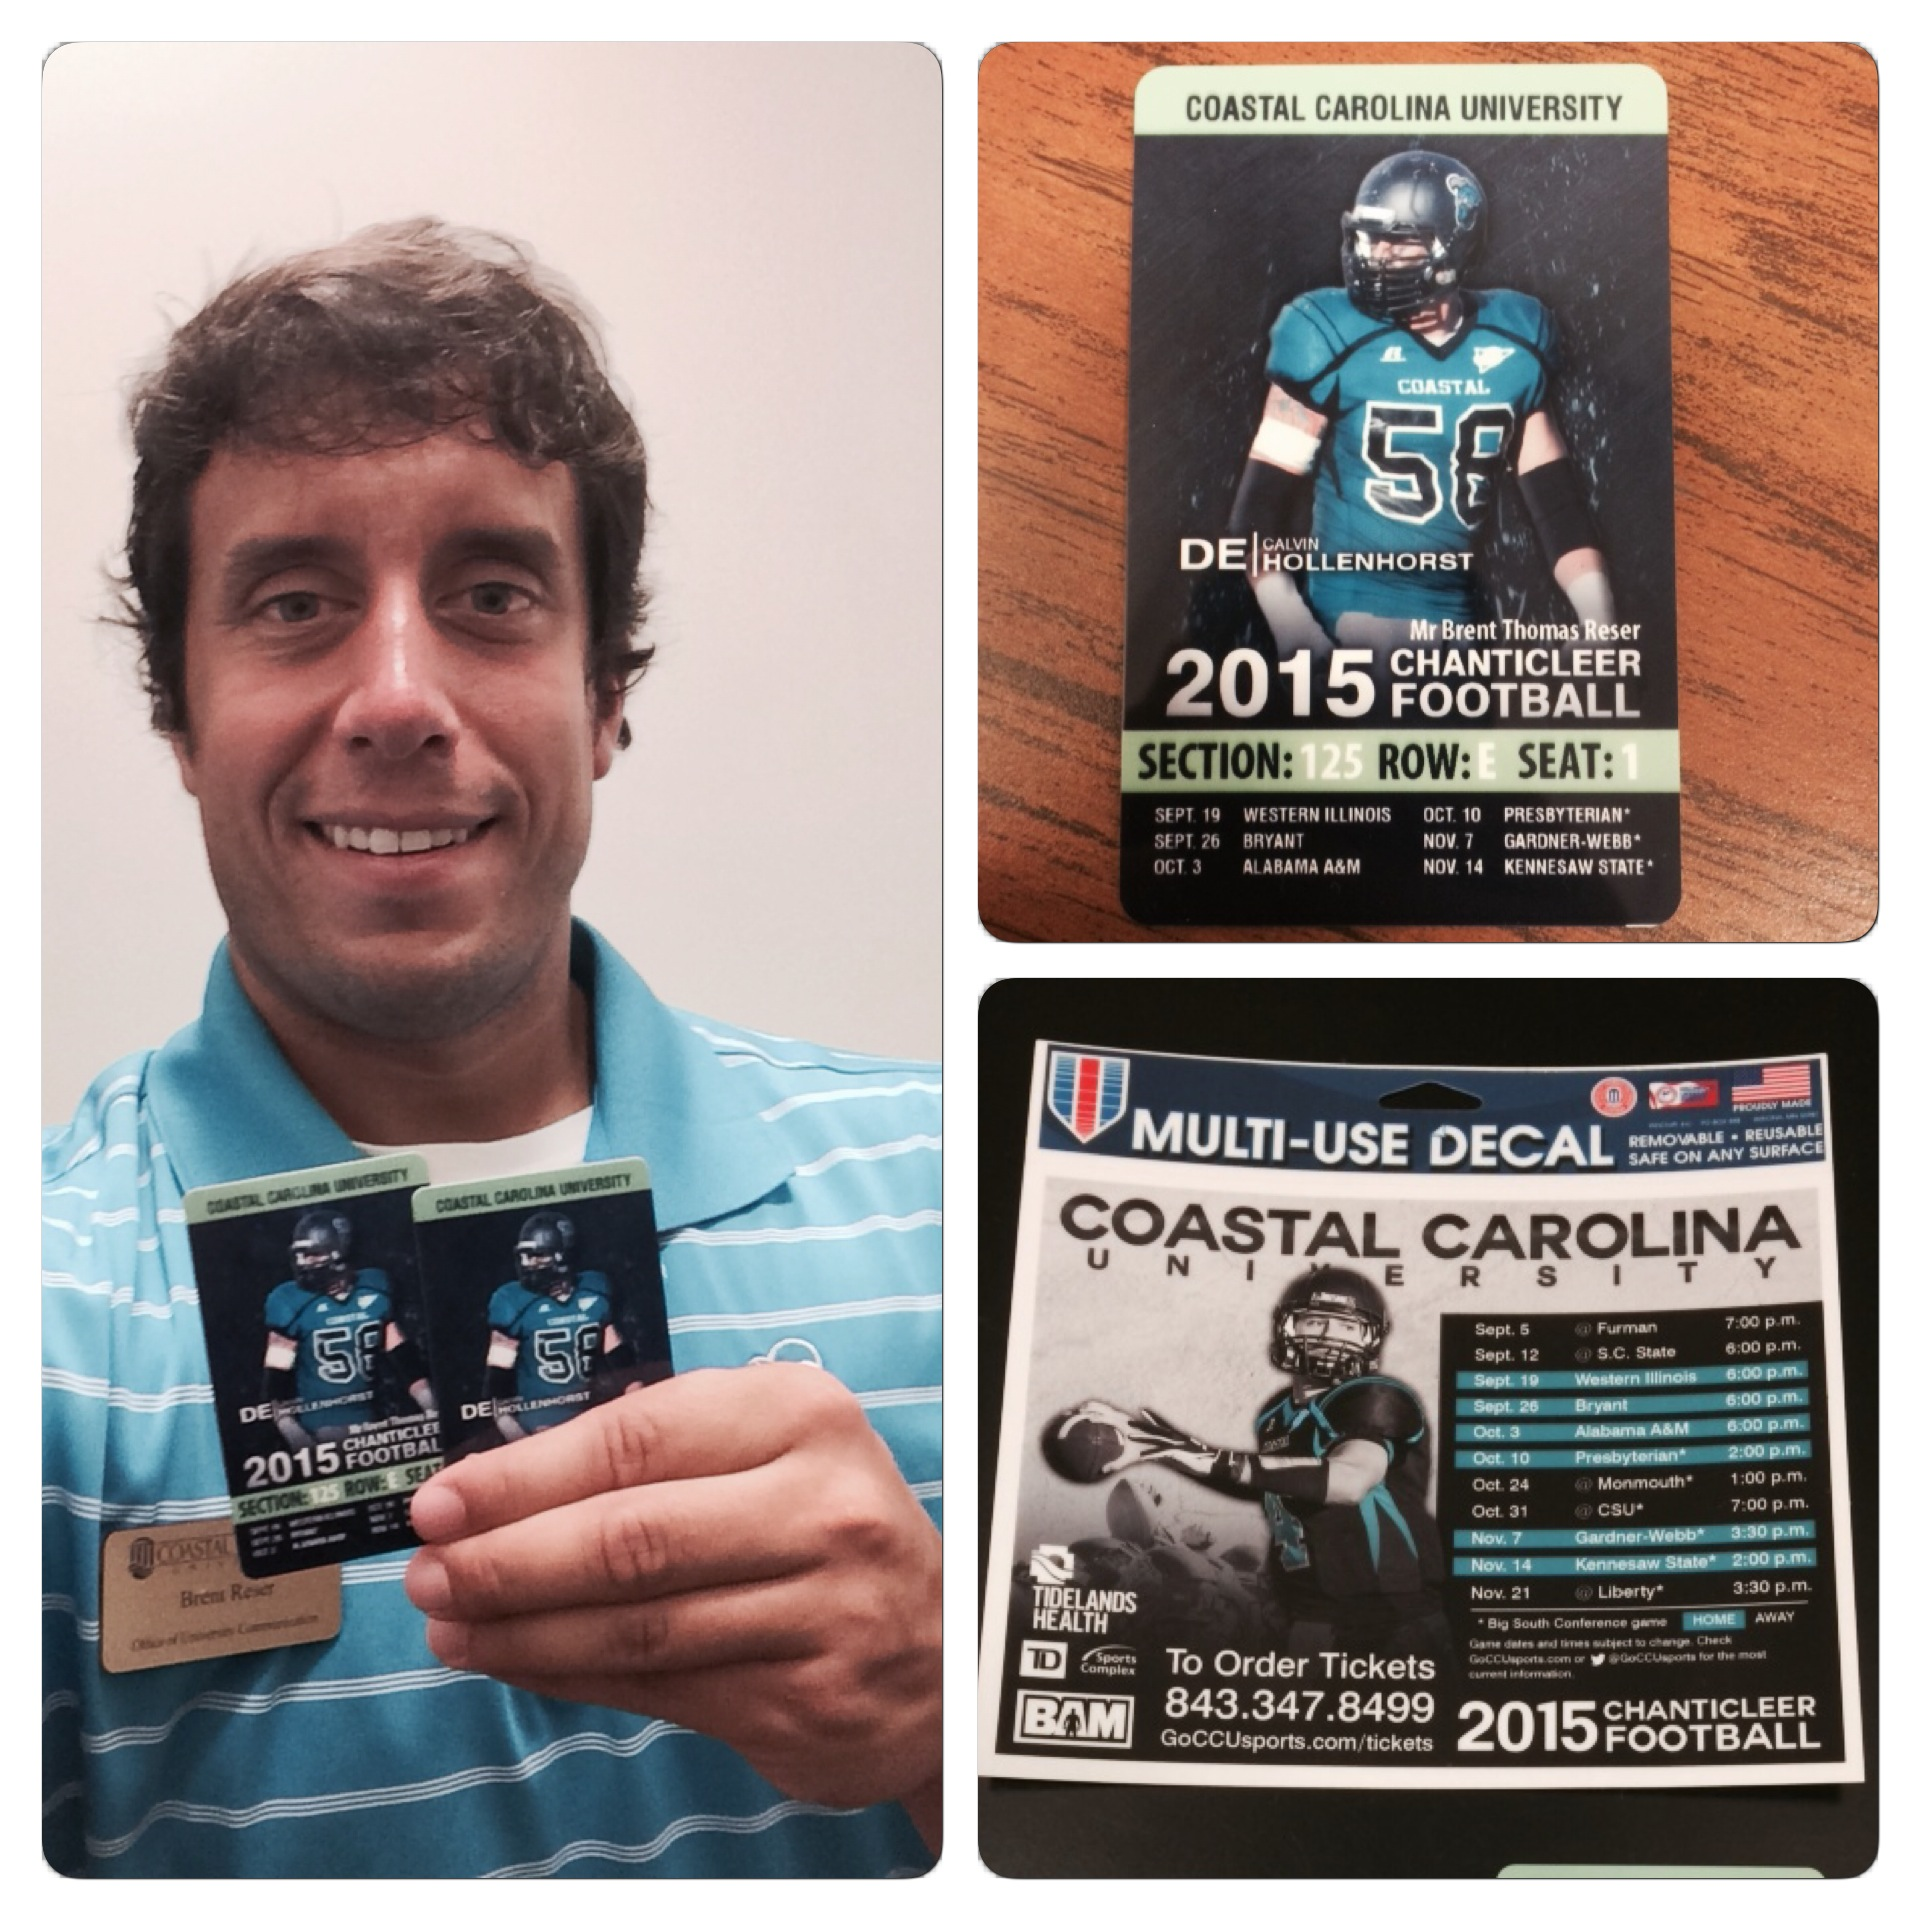 It is so convenient having your season tickets loaded onto a card.